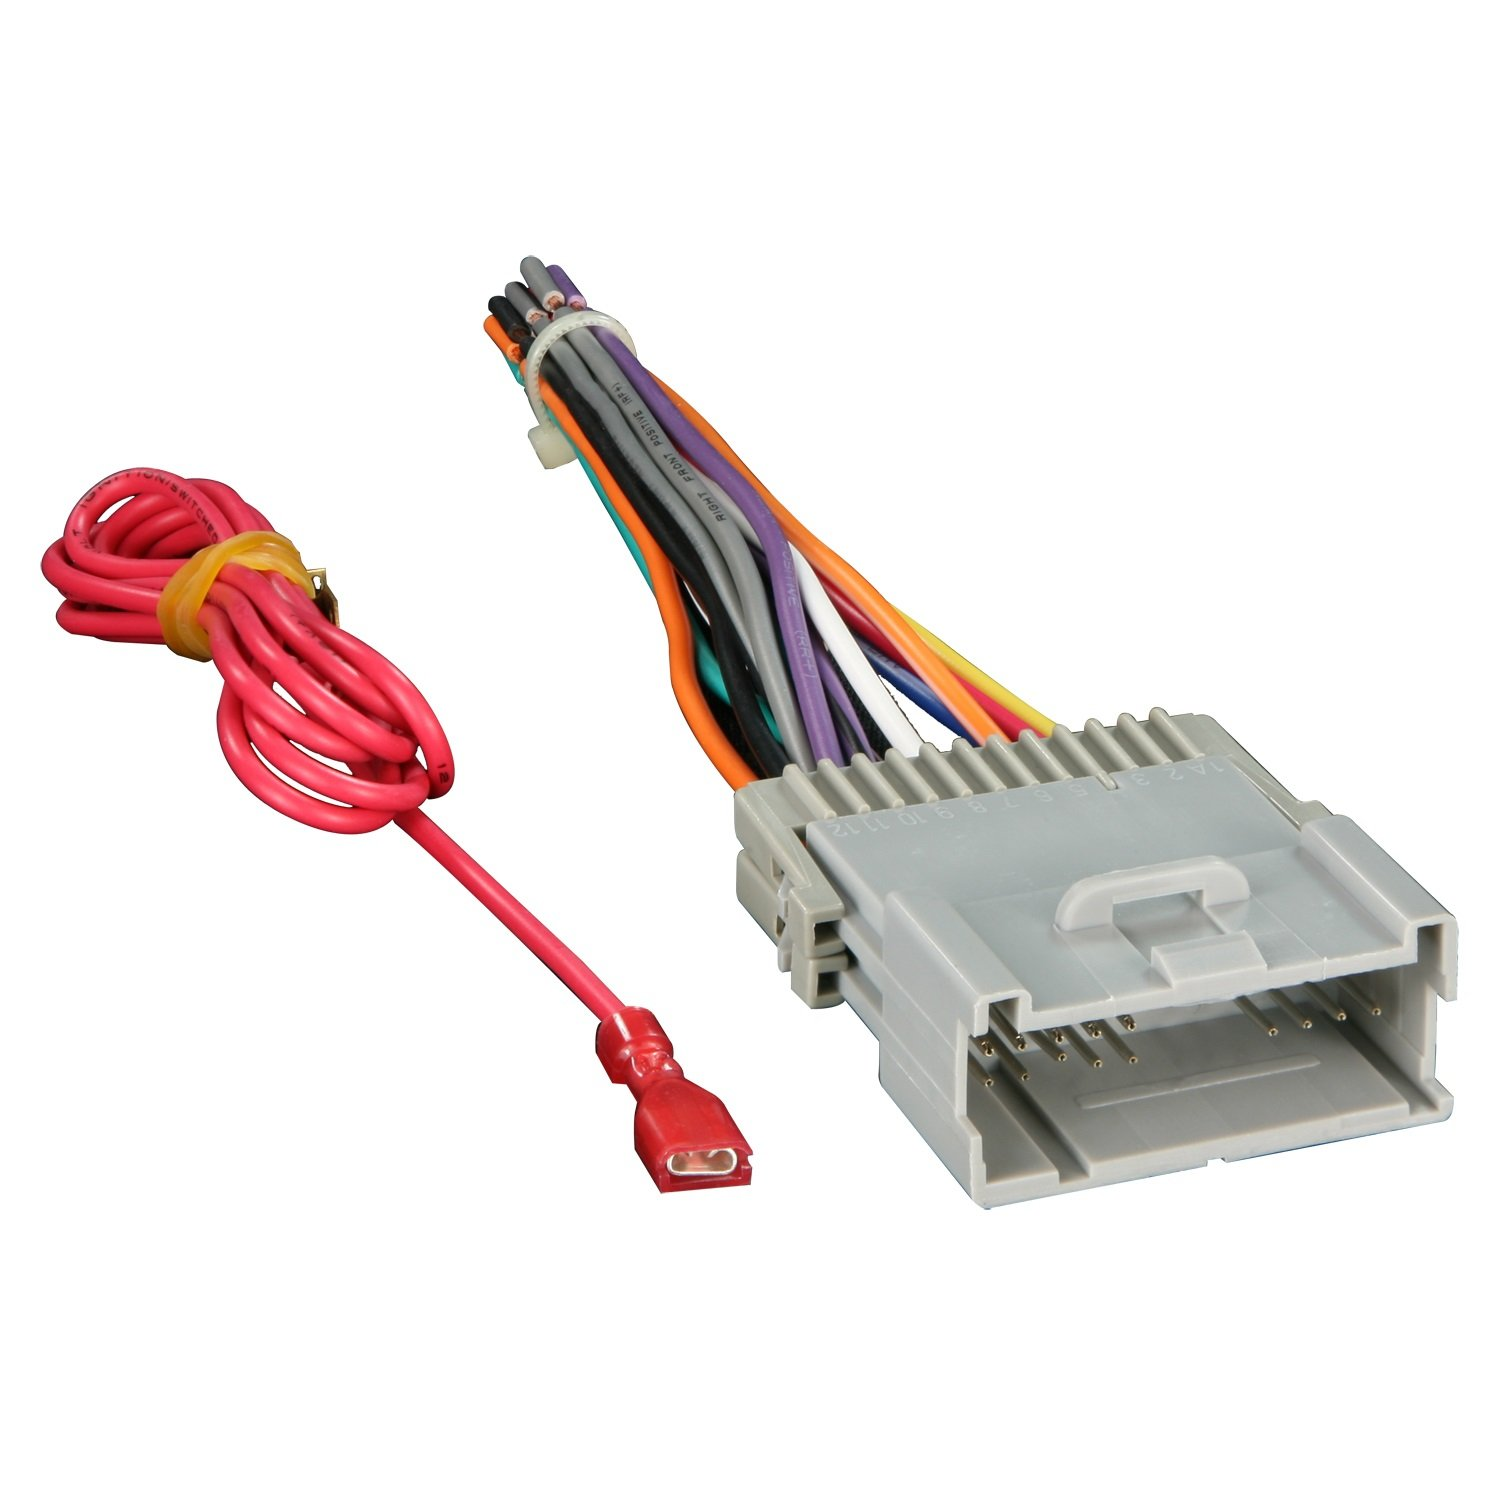 61eewxp9orL._SL1500_ amazon com metra 70 2003 radio wiring harness for gm 98 08 1990 chevy k1500 wiring harness at crackthecode.co